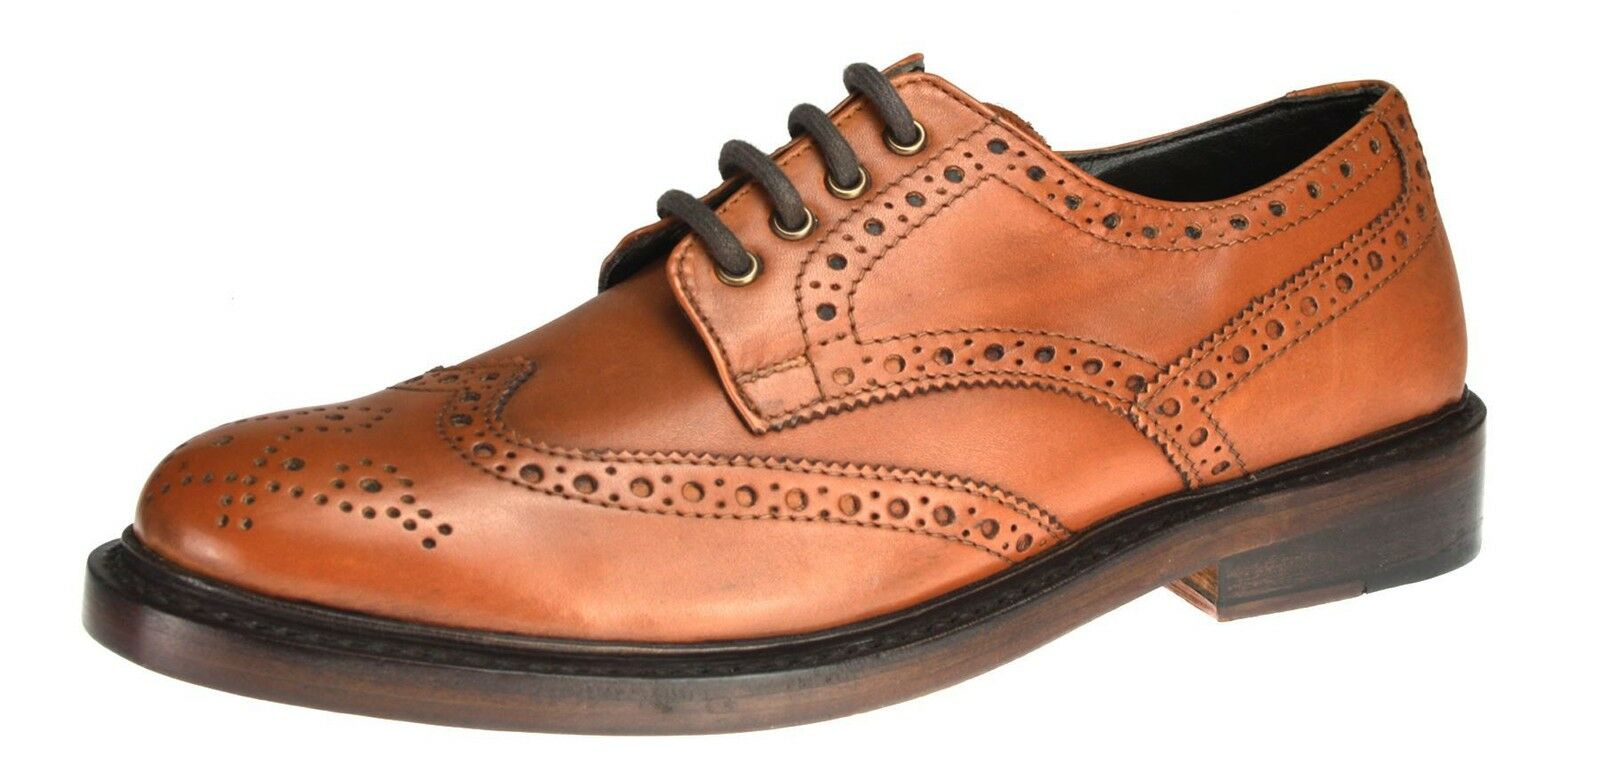 27f4c8bcd97e Benchgrade 1920 Mens Tan Brown All Leather Handmade Welted Brogue Lace Up  shoes